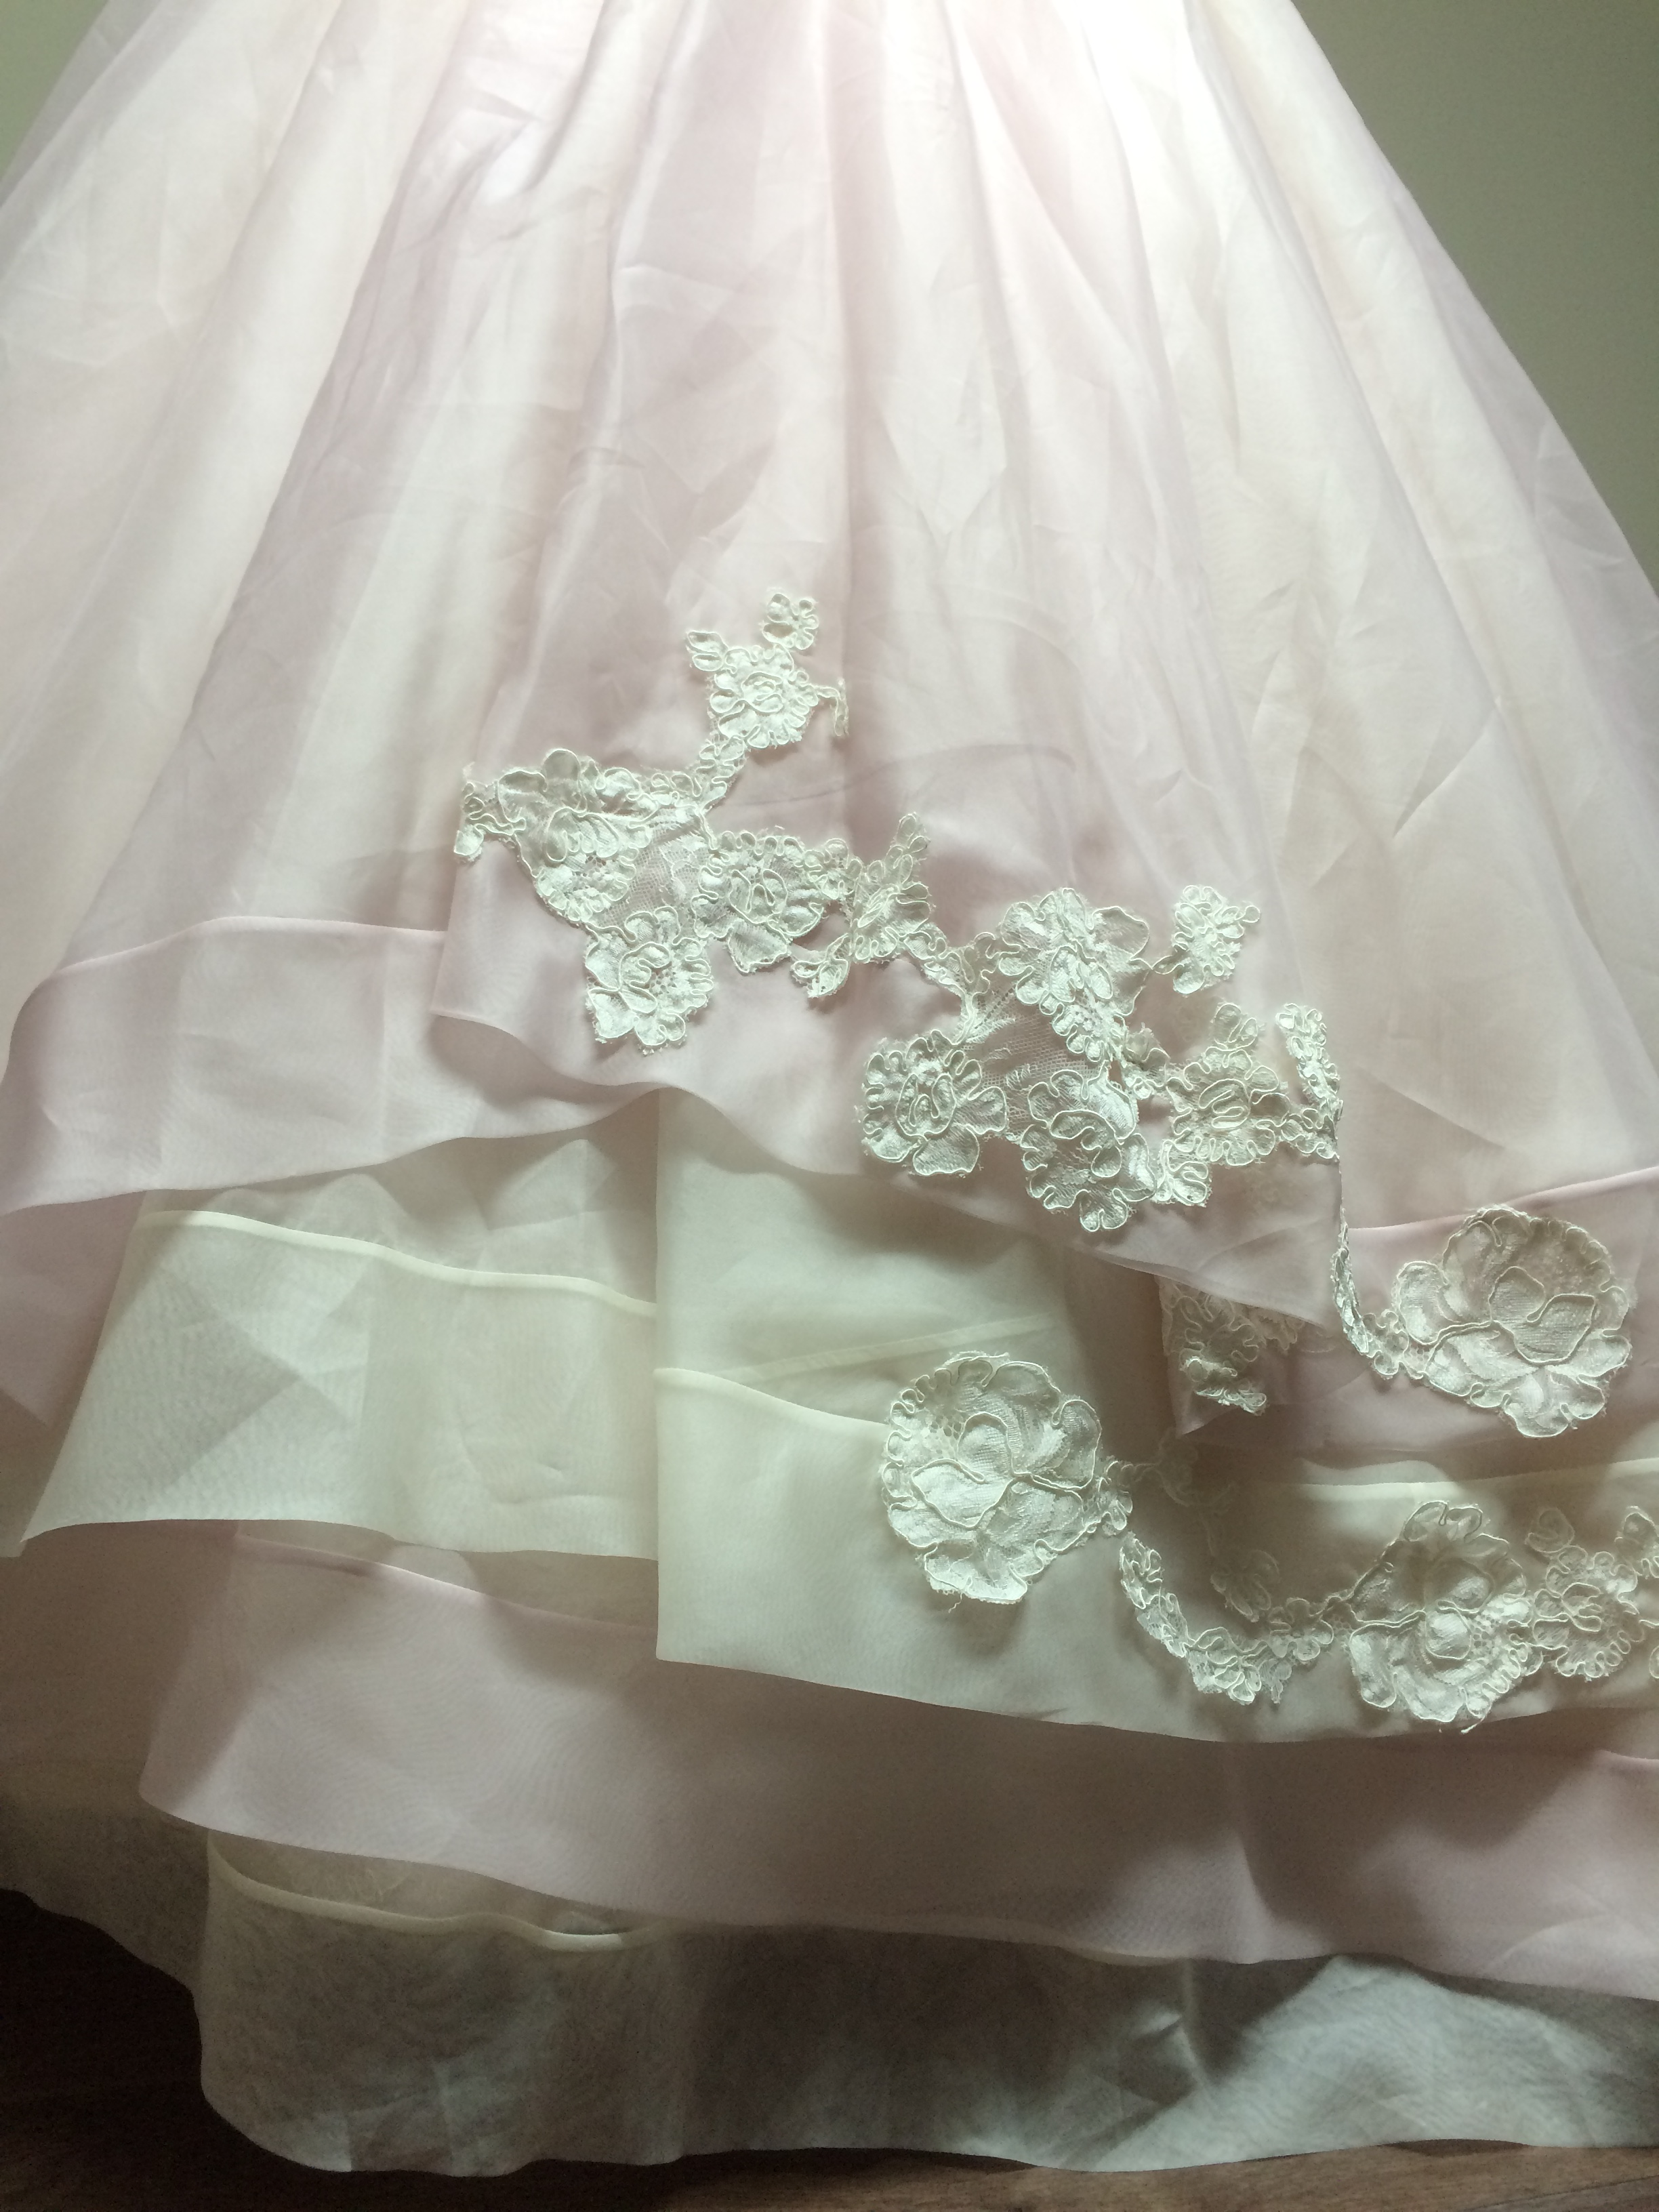 Finishing off the layered silk organza skirt hems with a scattering of lace.